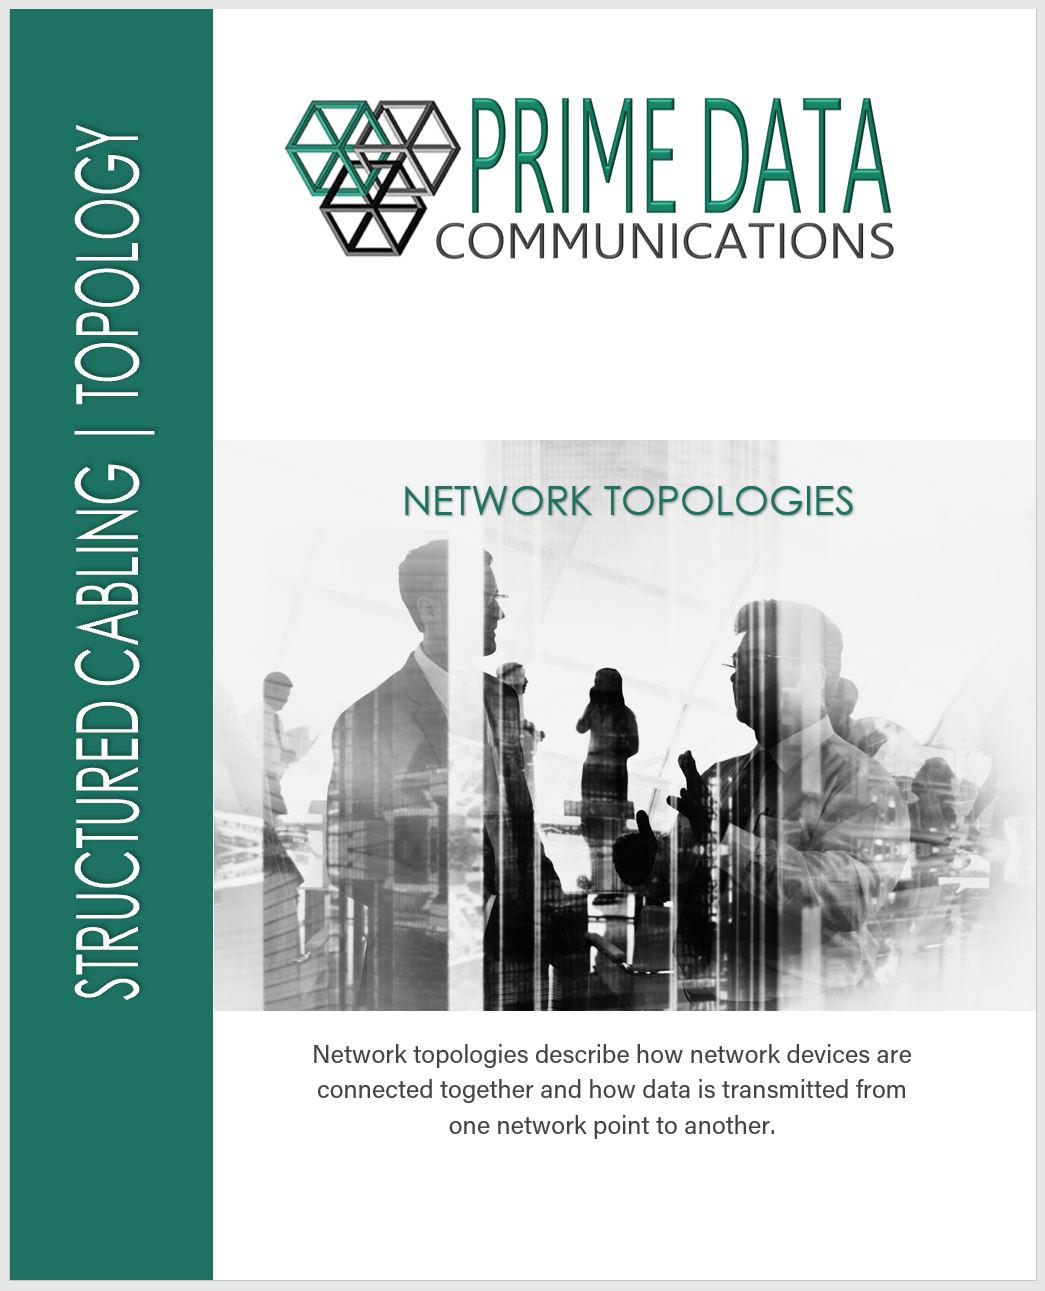 Download Prime Data Communications Report Here